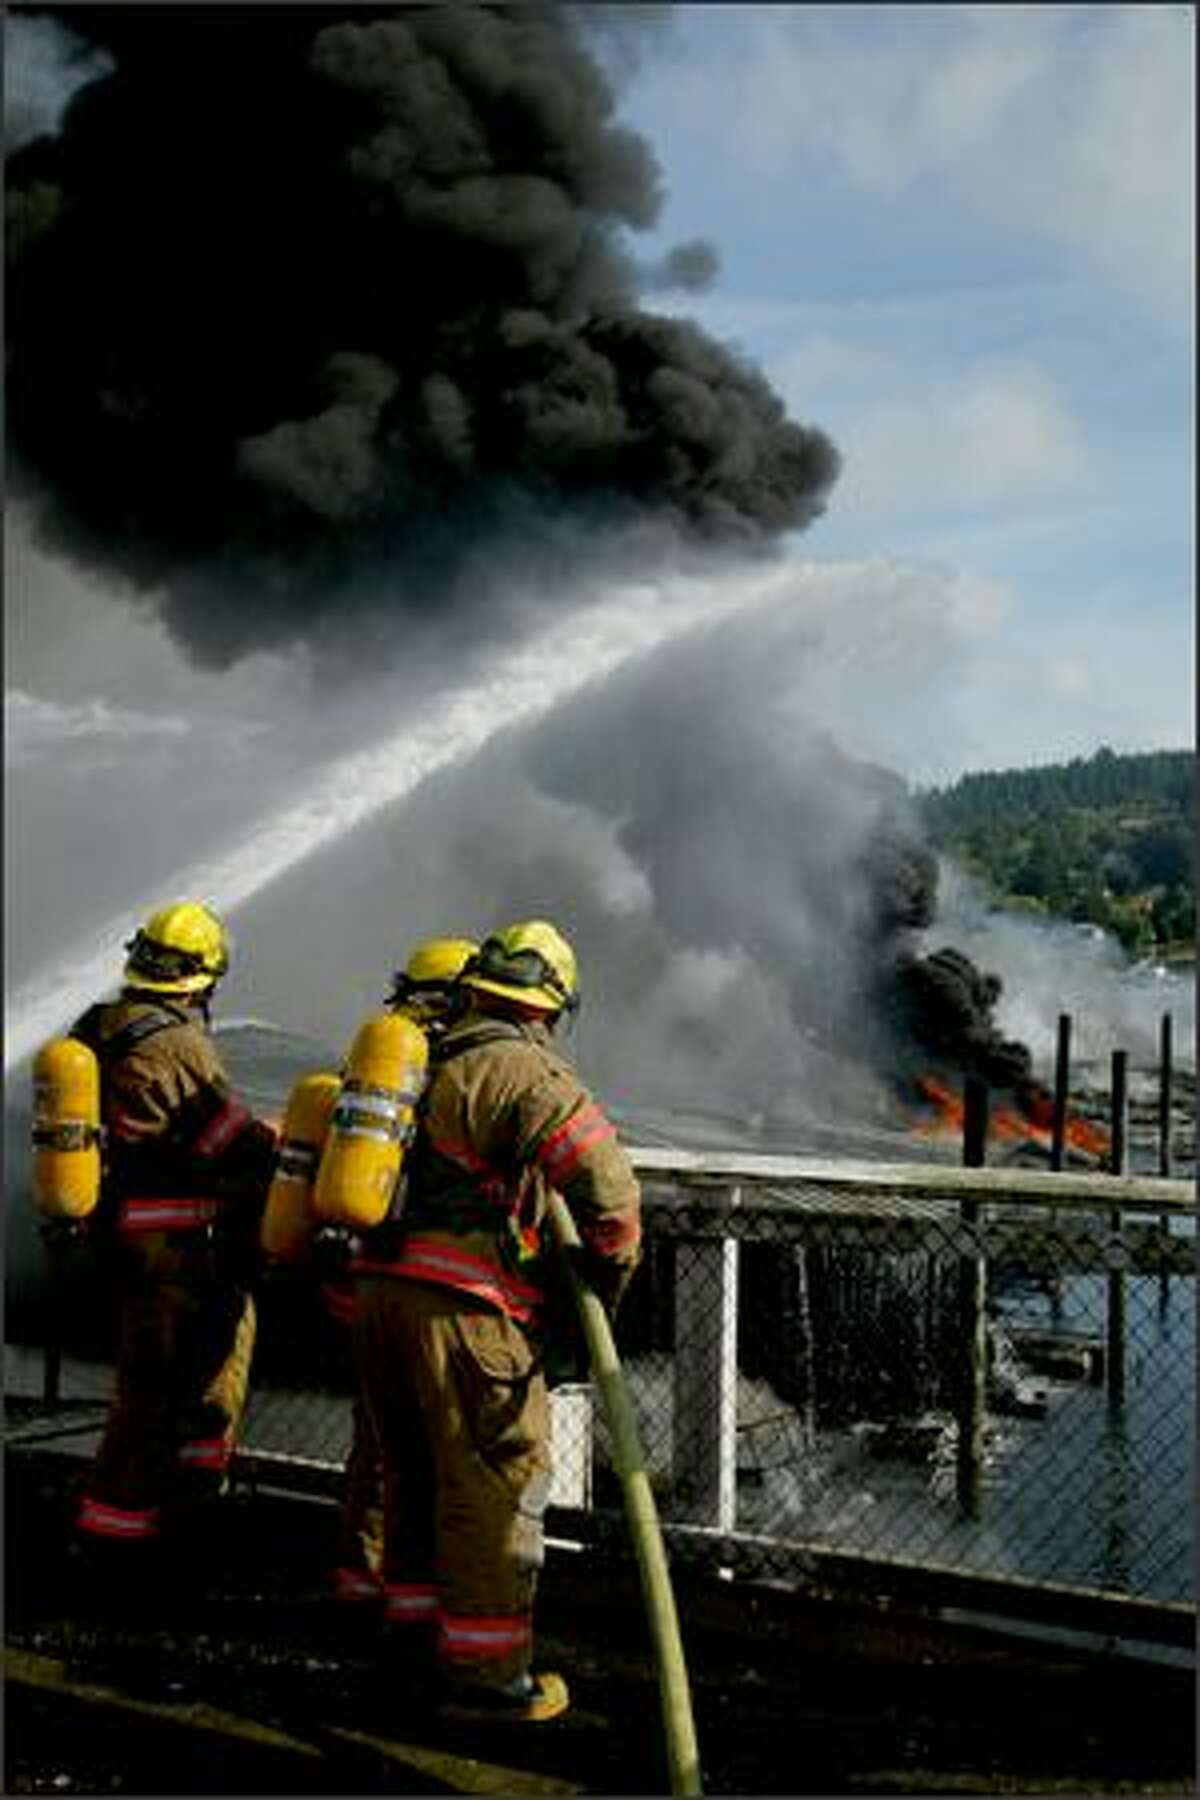 Firefighters fight a fast-moving fire at the Harborview Marina in downtown Gig Harbor.